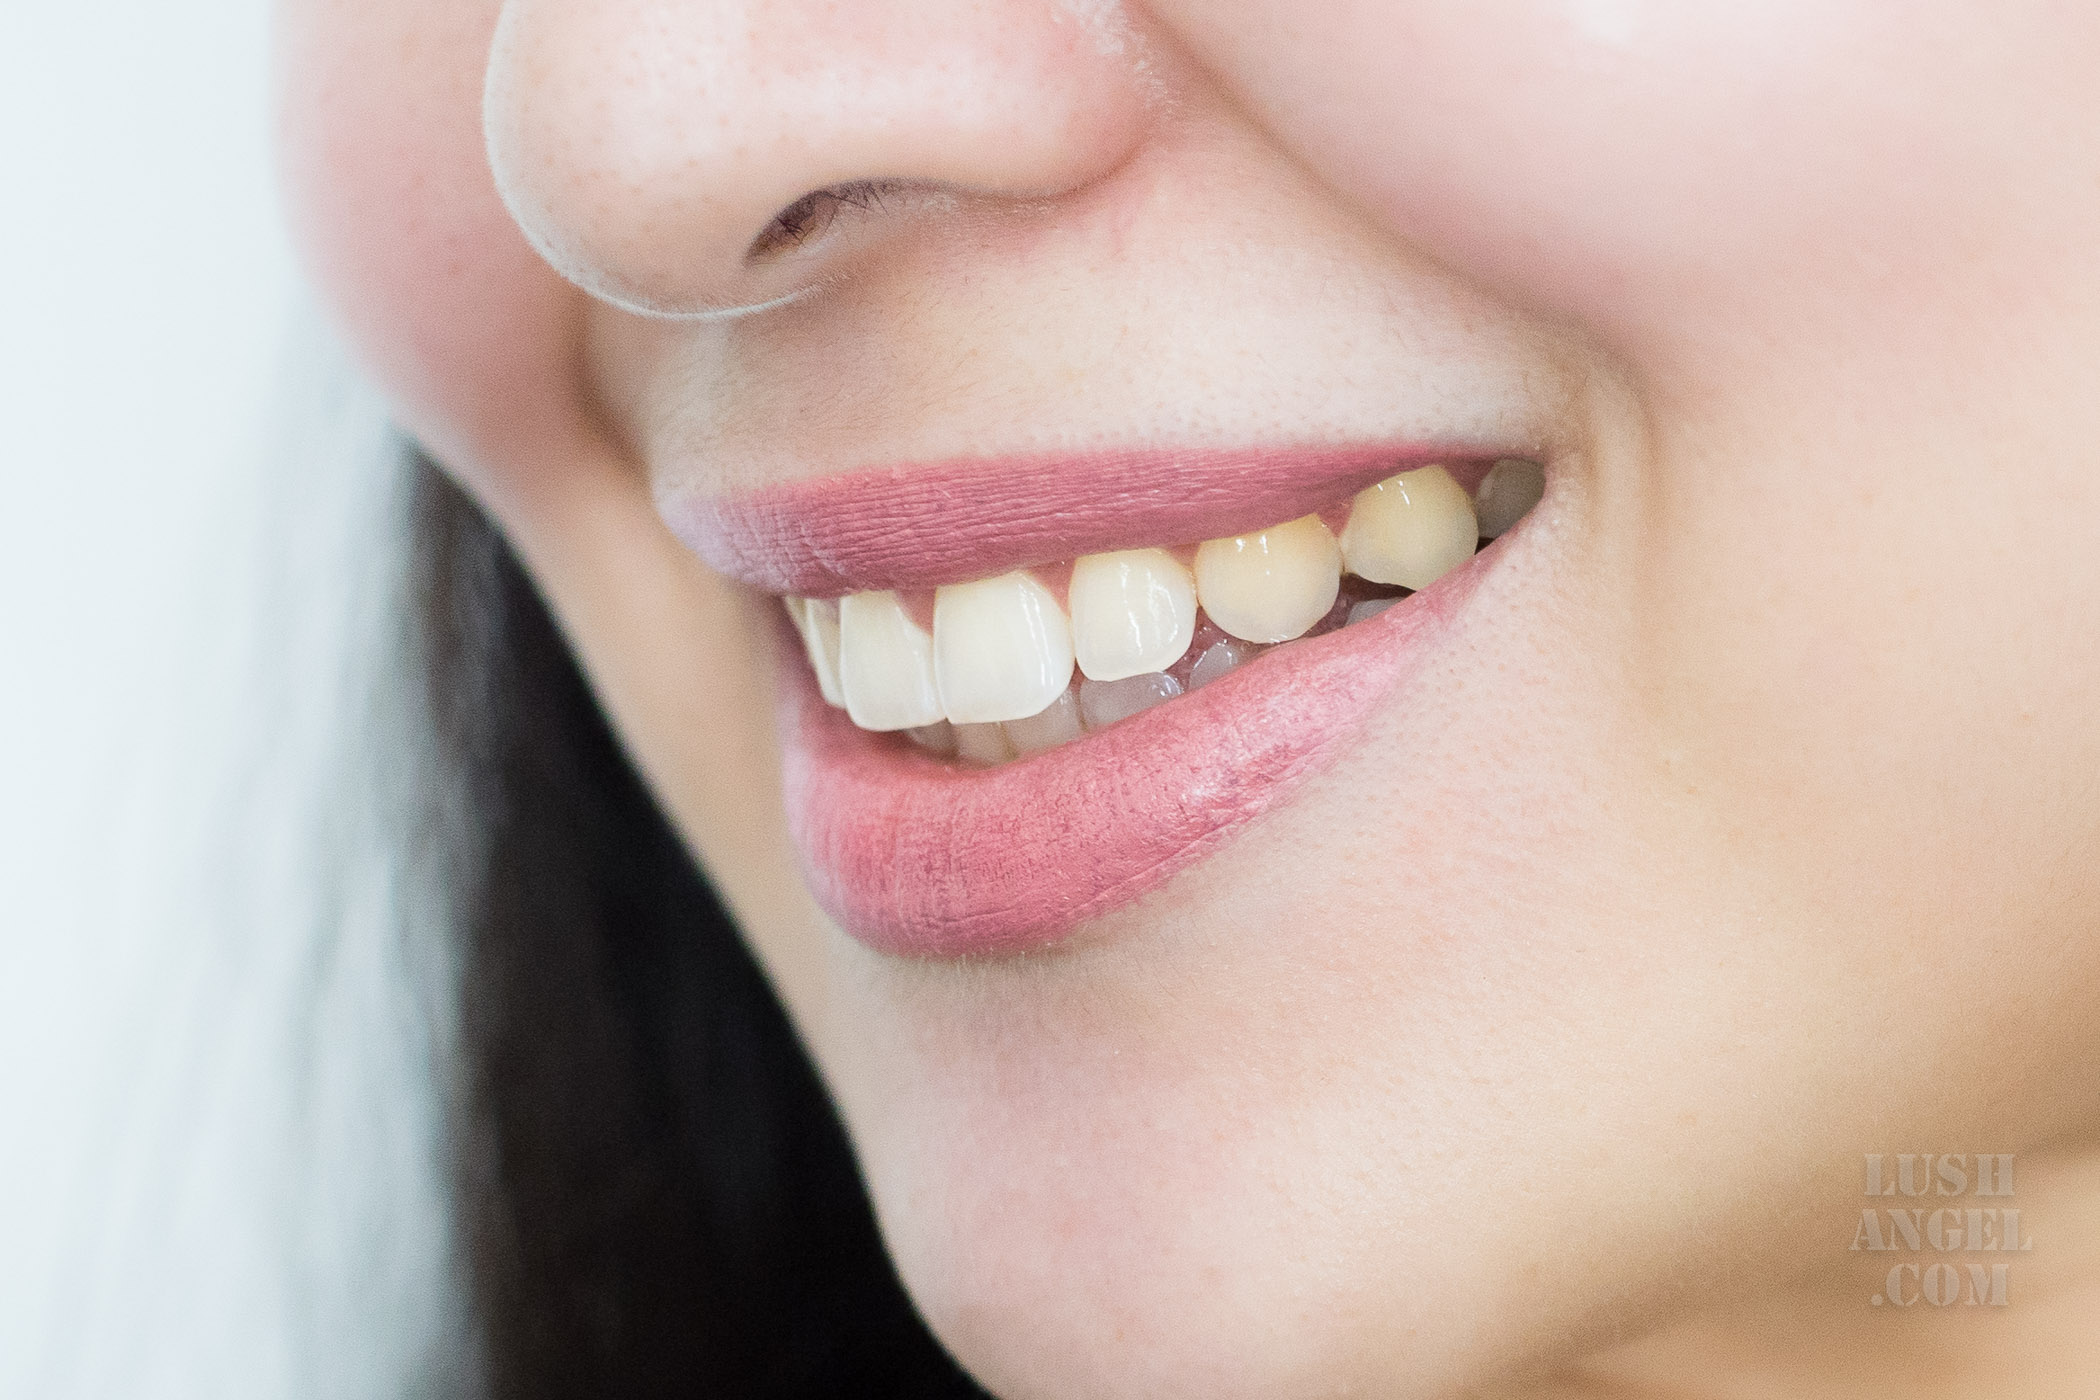 the-smile-bar-teeth-whitening-review